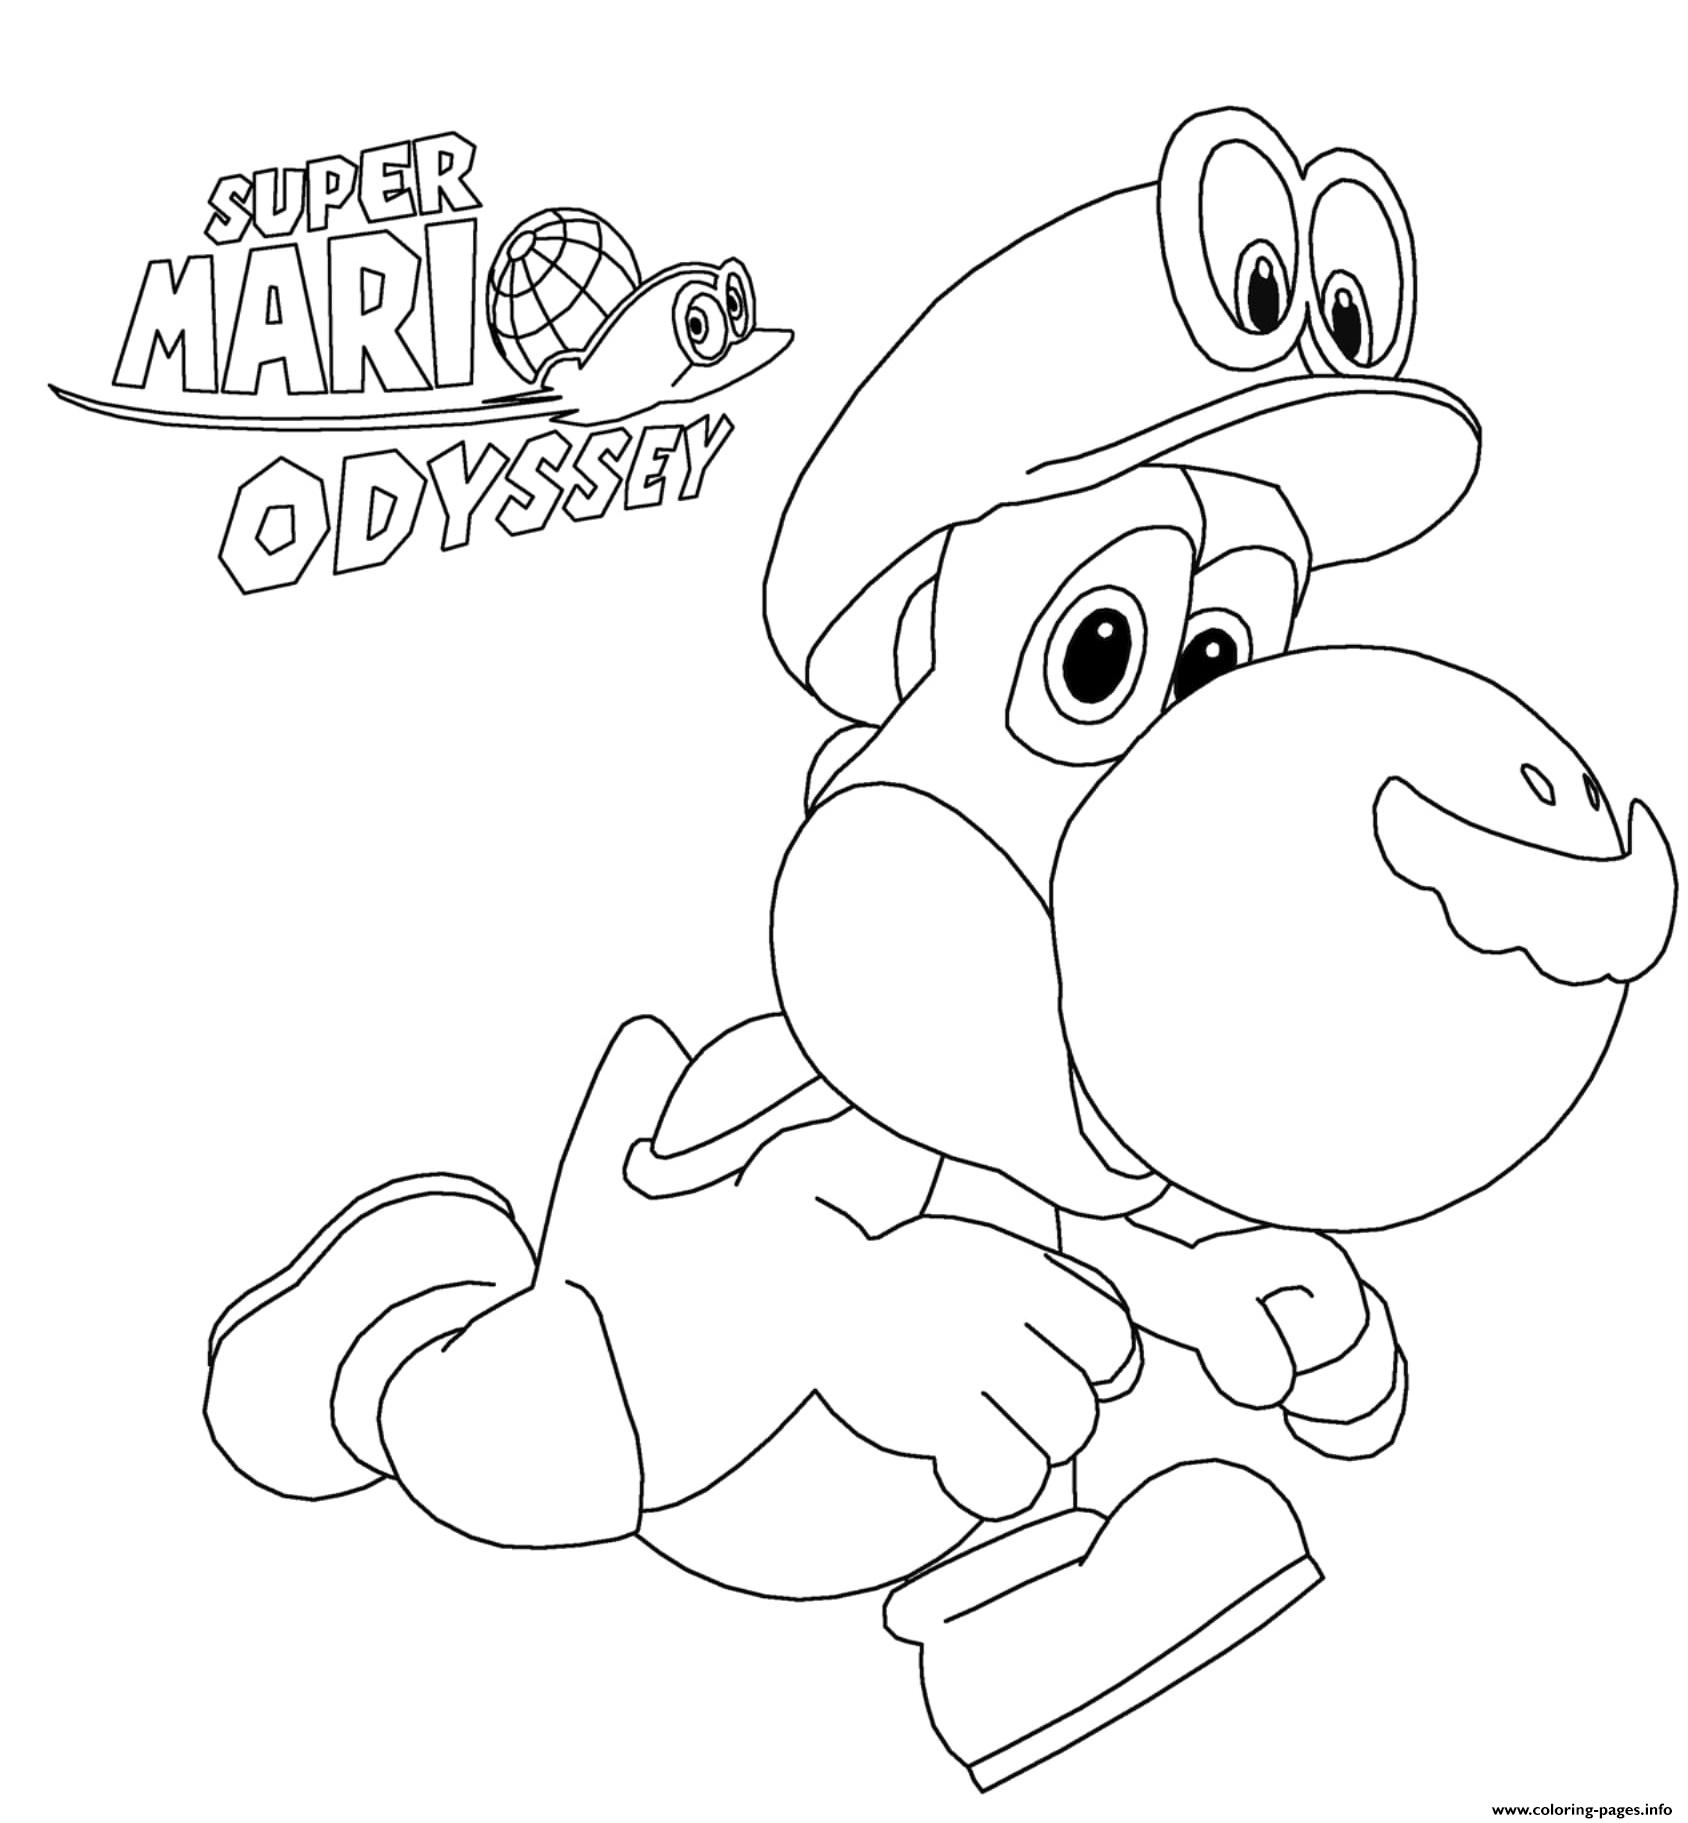 printable mario odyssey coloring pages printable coloring super mario odyssey free mario galaxy coloring pages mario odyssey printable